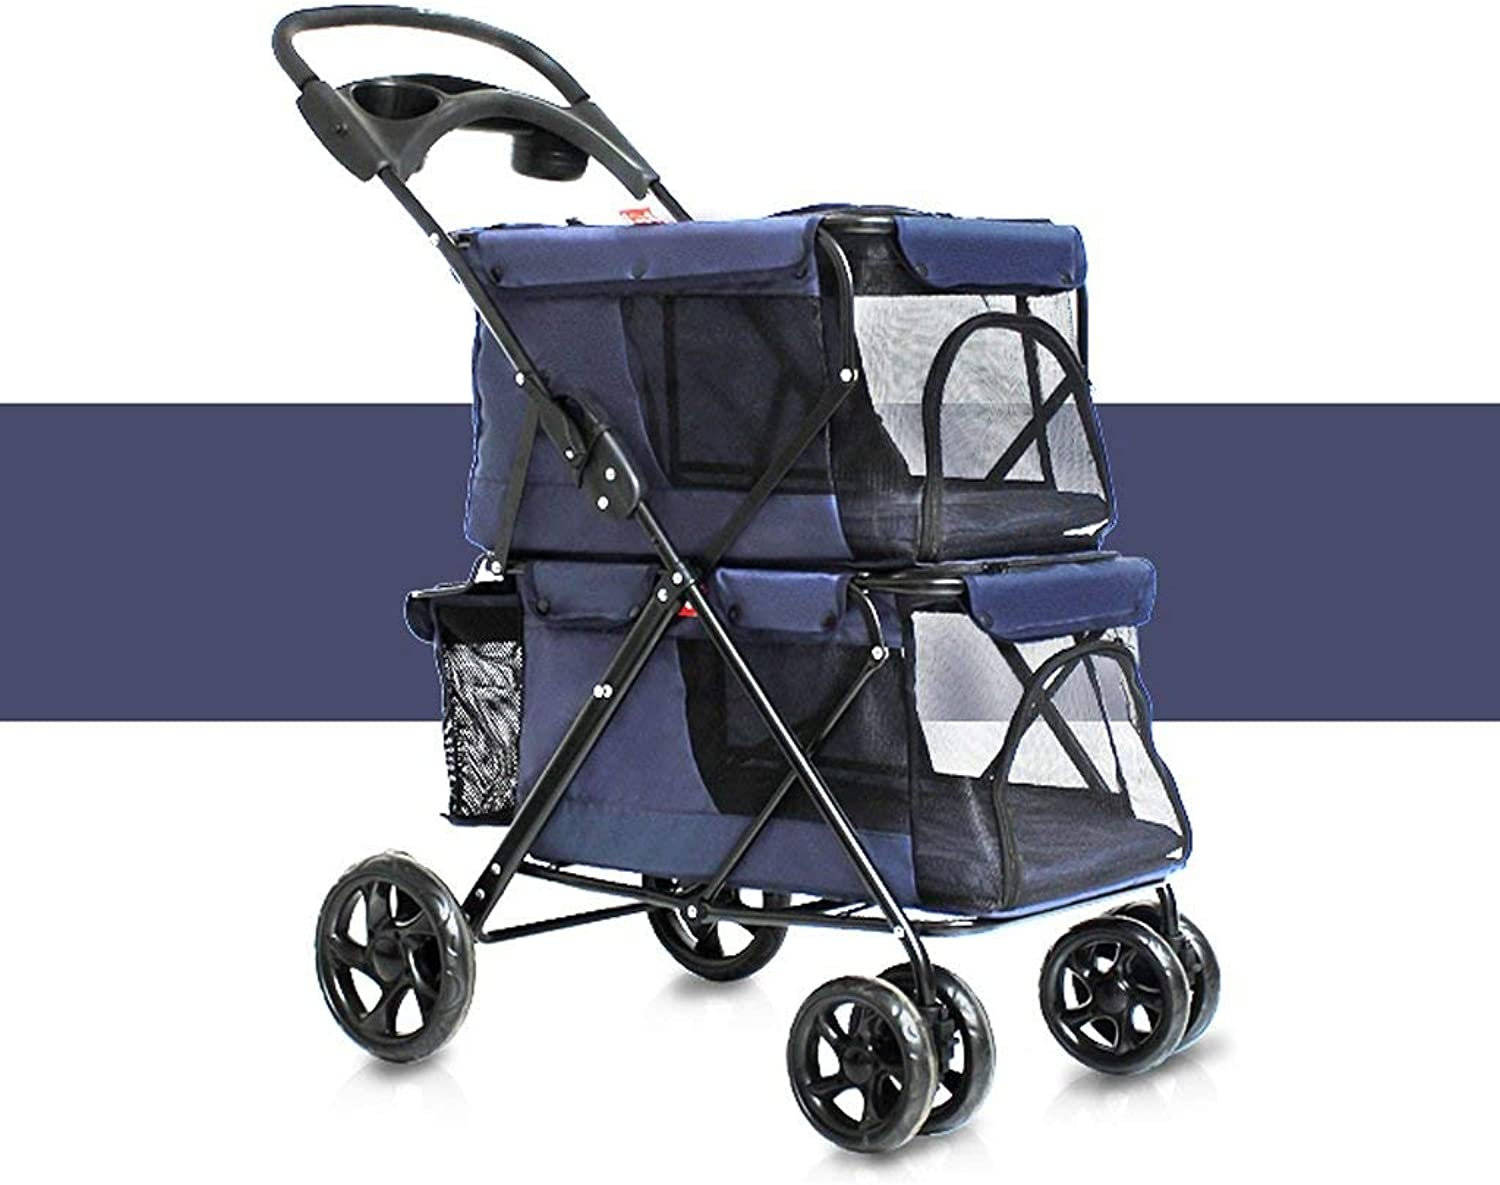 LXF Pet travel stroller Lightweight folding double pet stroller Easy folding with removable pad, storage basket